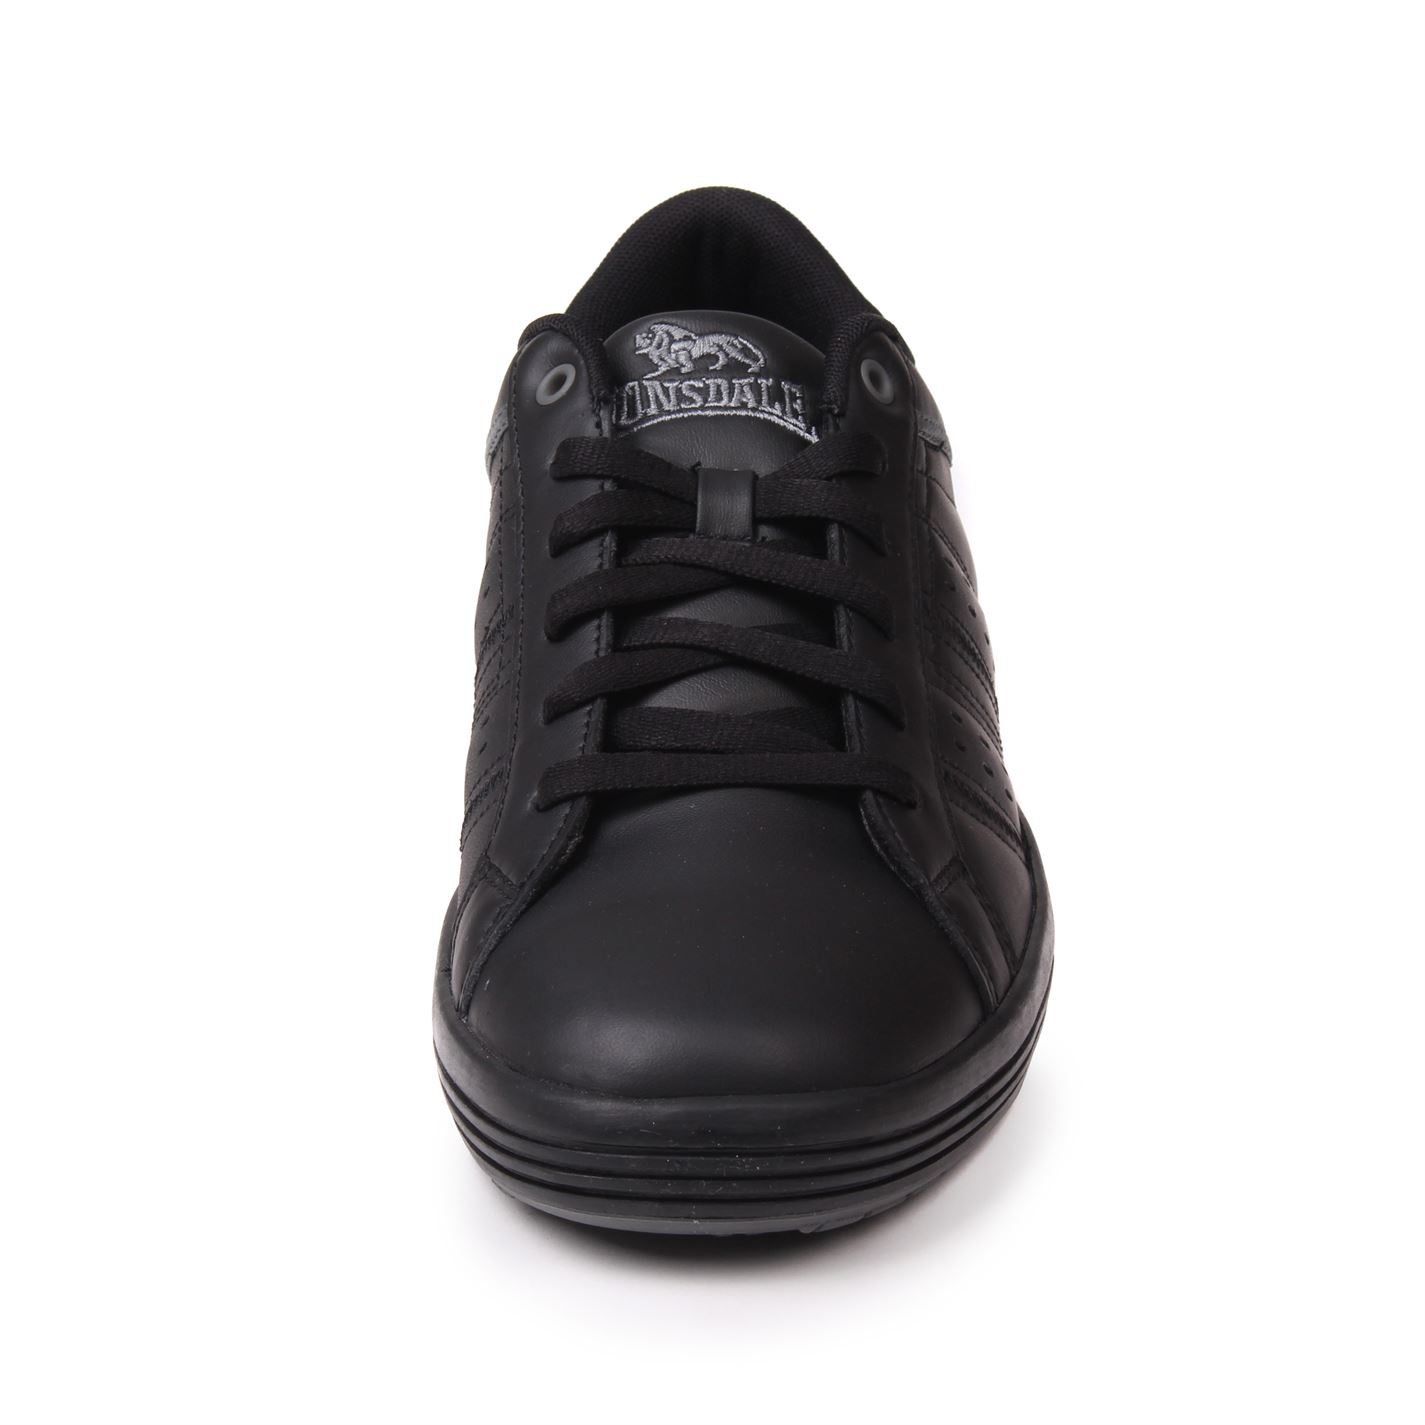 Lonsdale Ladbroke Trainers Pumps Running Sneakers Lace Up Gents Mens